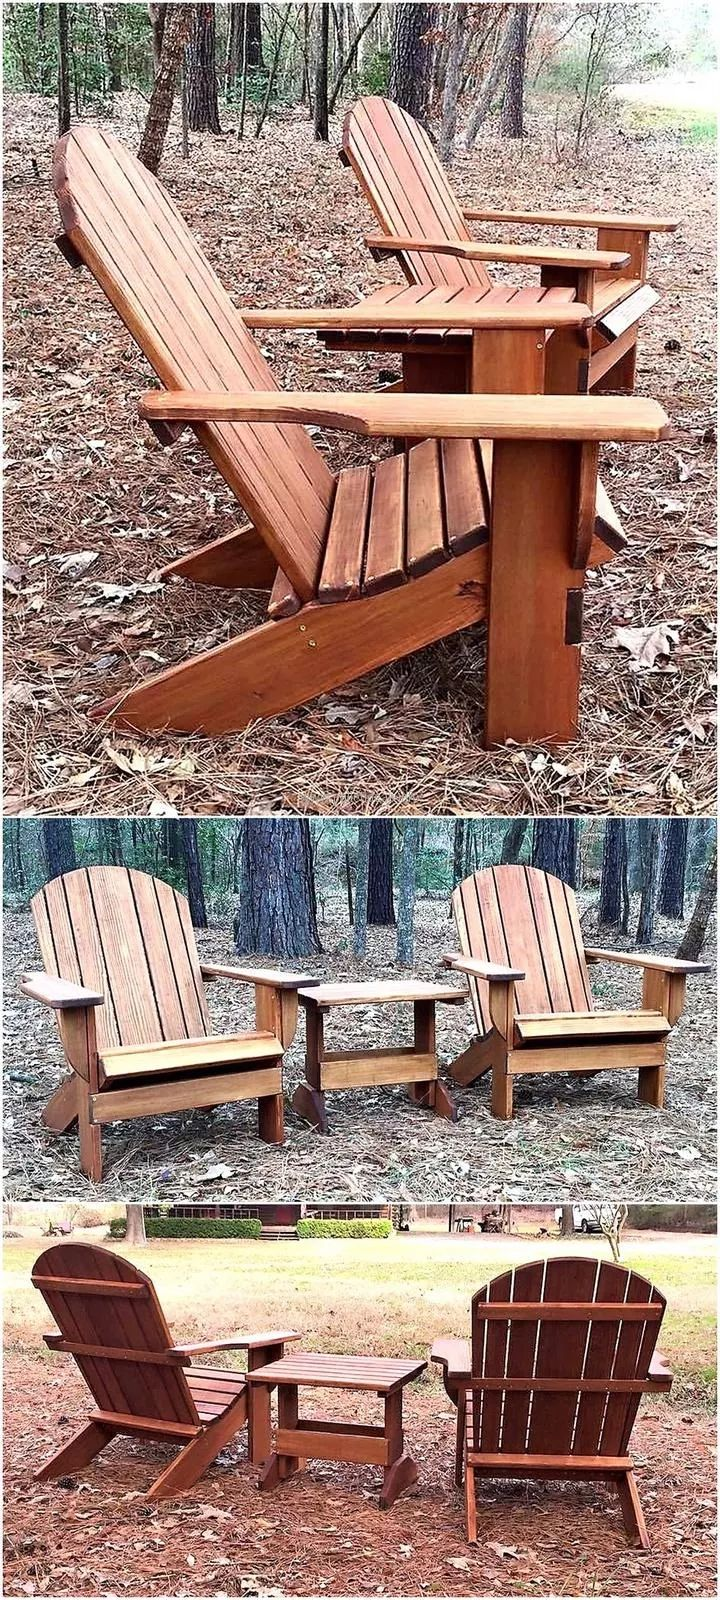 165 best Adirondack / West Point chairs images on Pinterest ...